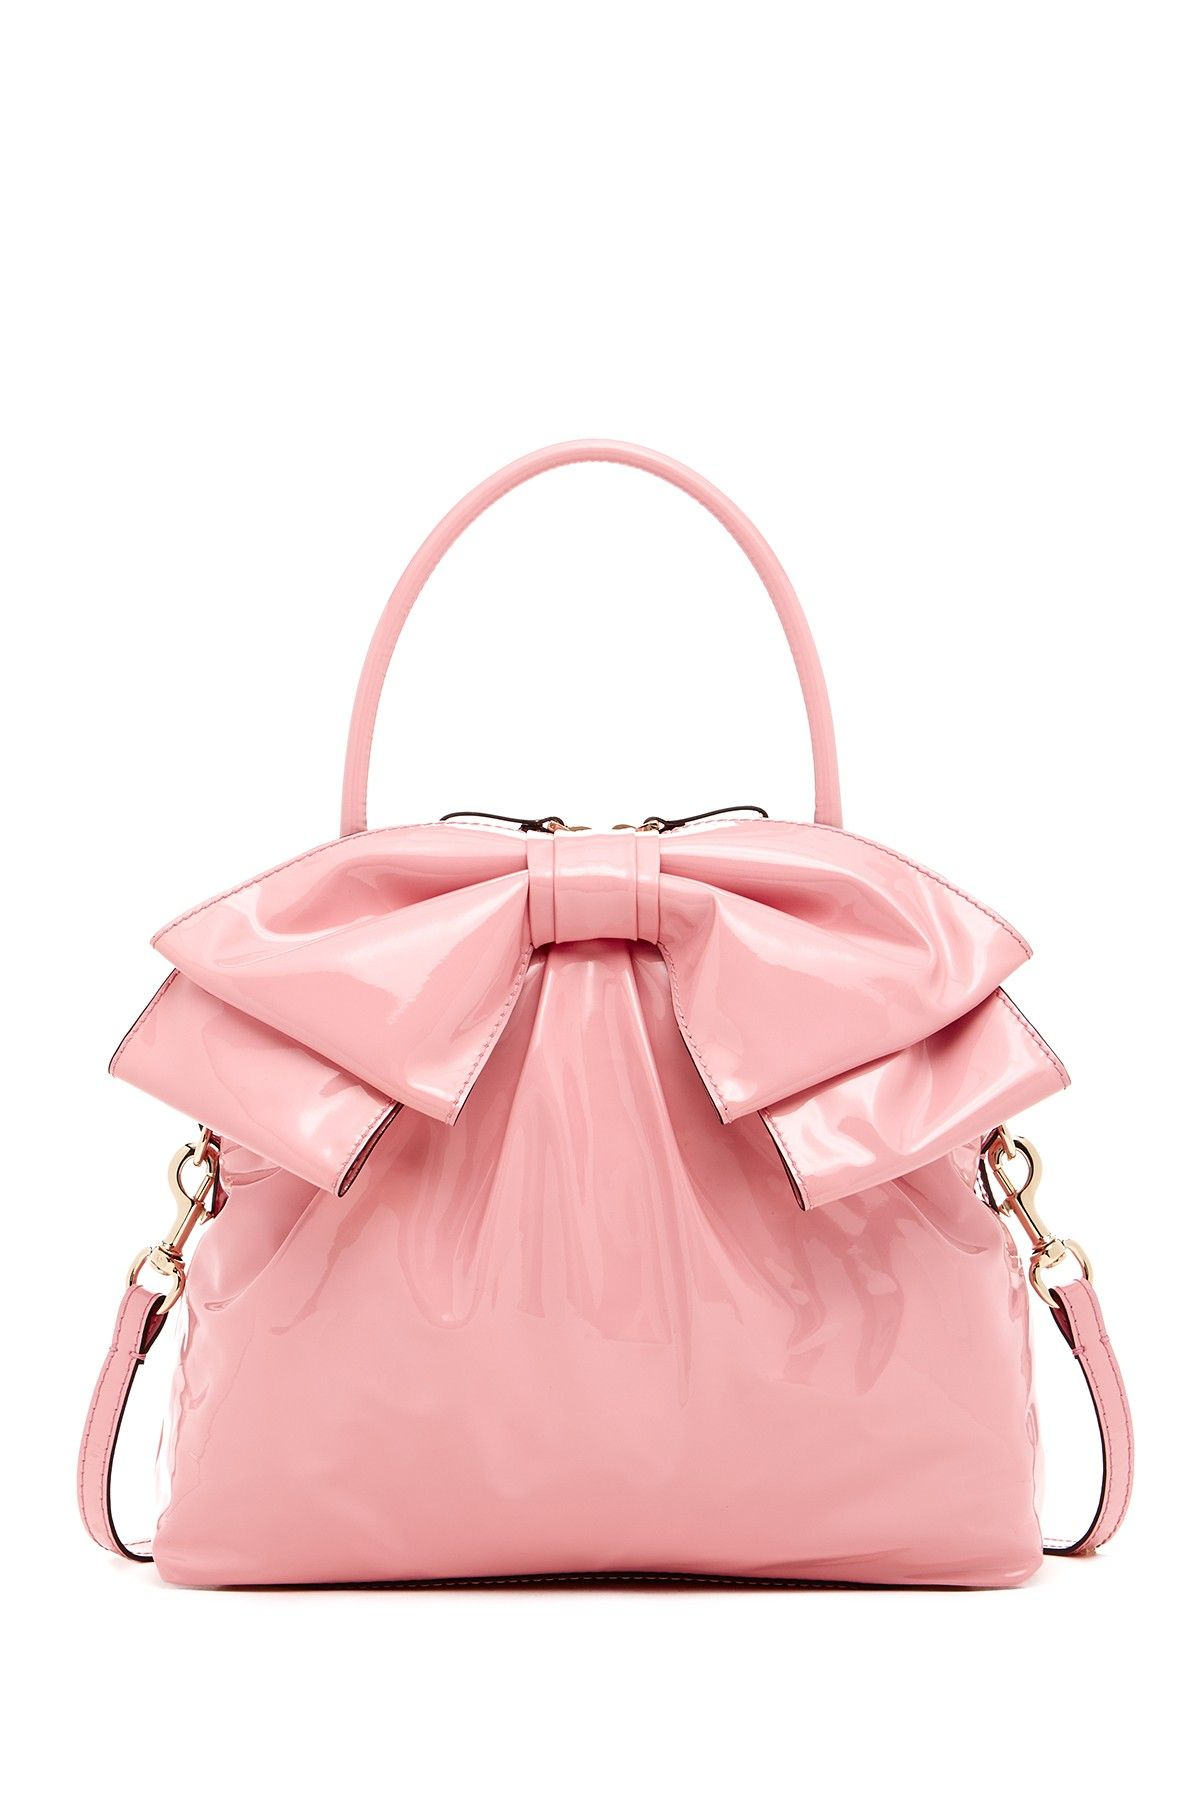 Valentino Double Handle Bow Dome Bag It S Bowtiful